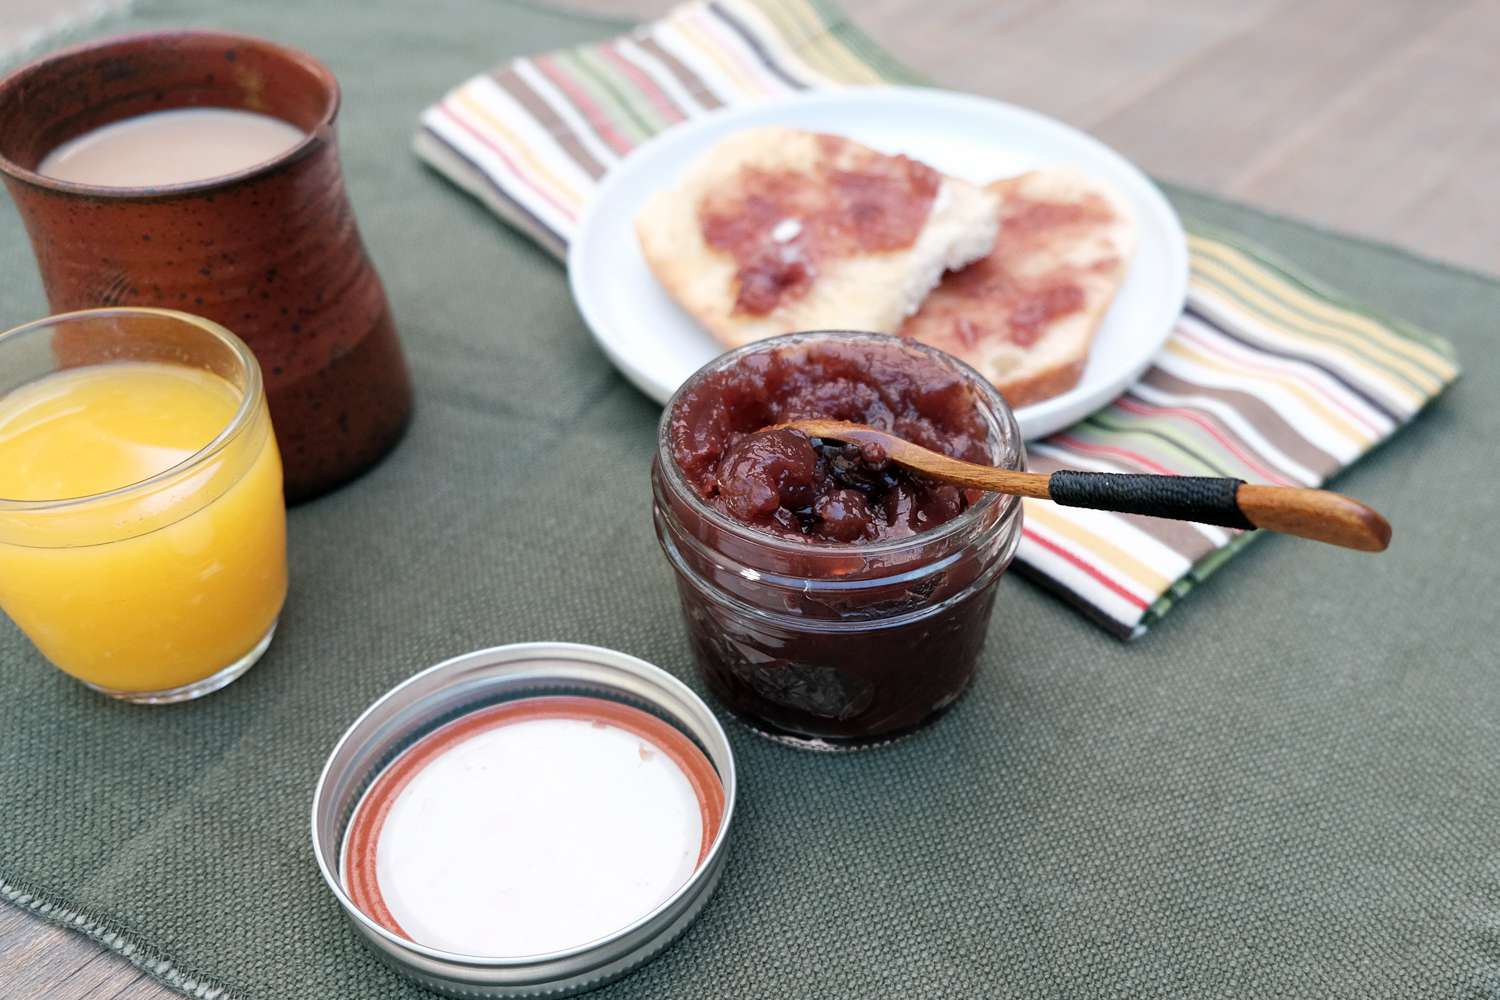 breakfast set up with jelly jar showing single-use canning lid